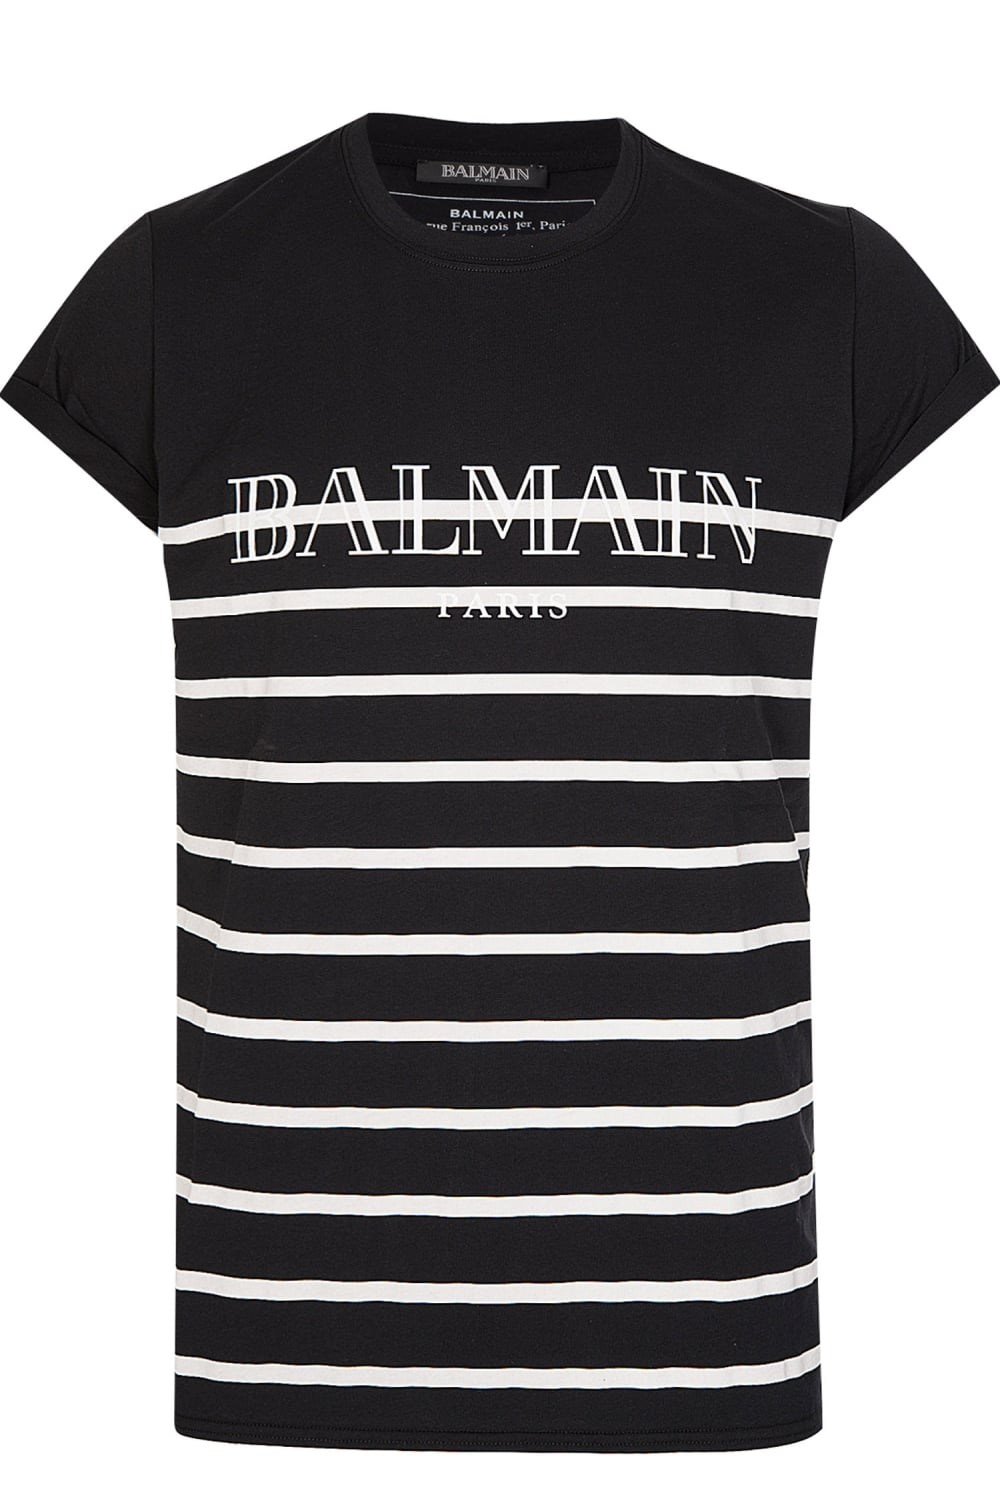 3b5b55d9 Balmain Paris Black Stripe Crew Neck T-shirt